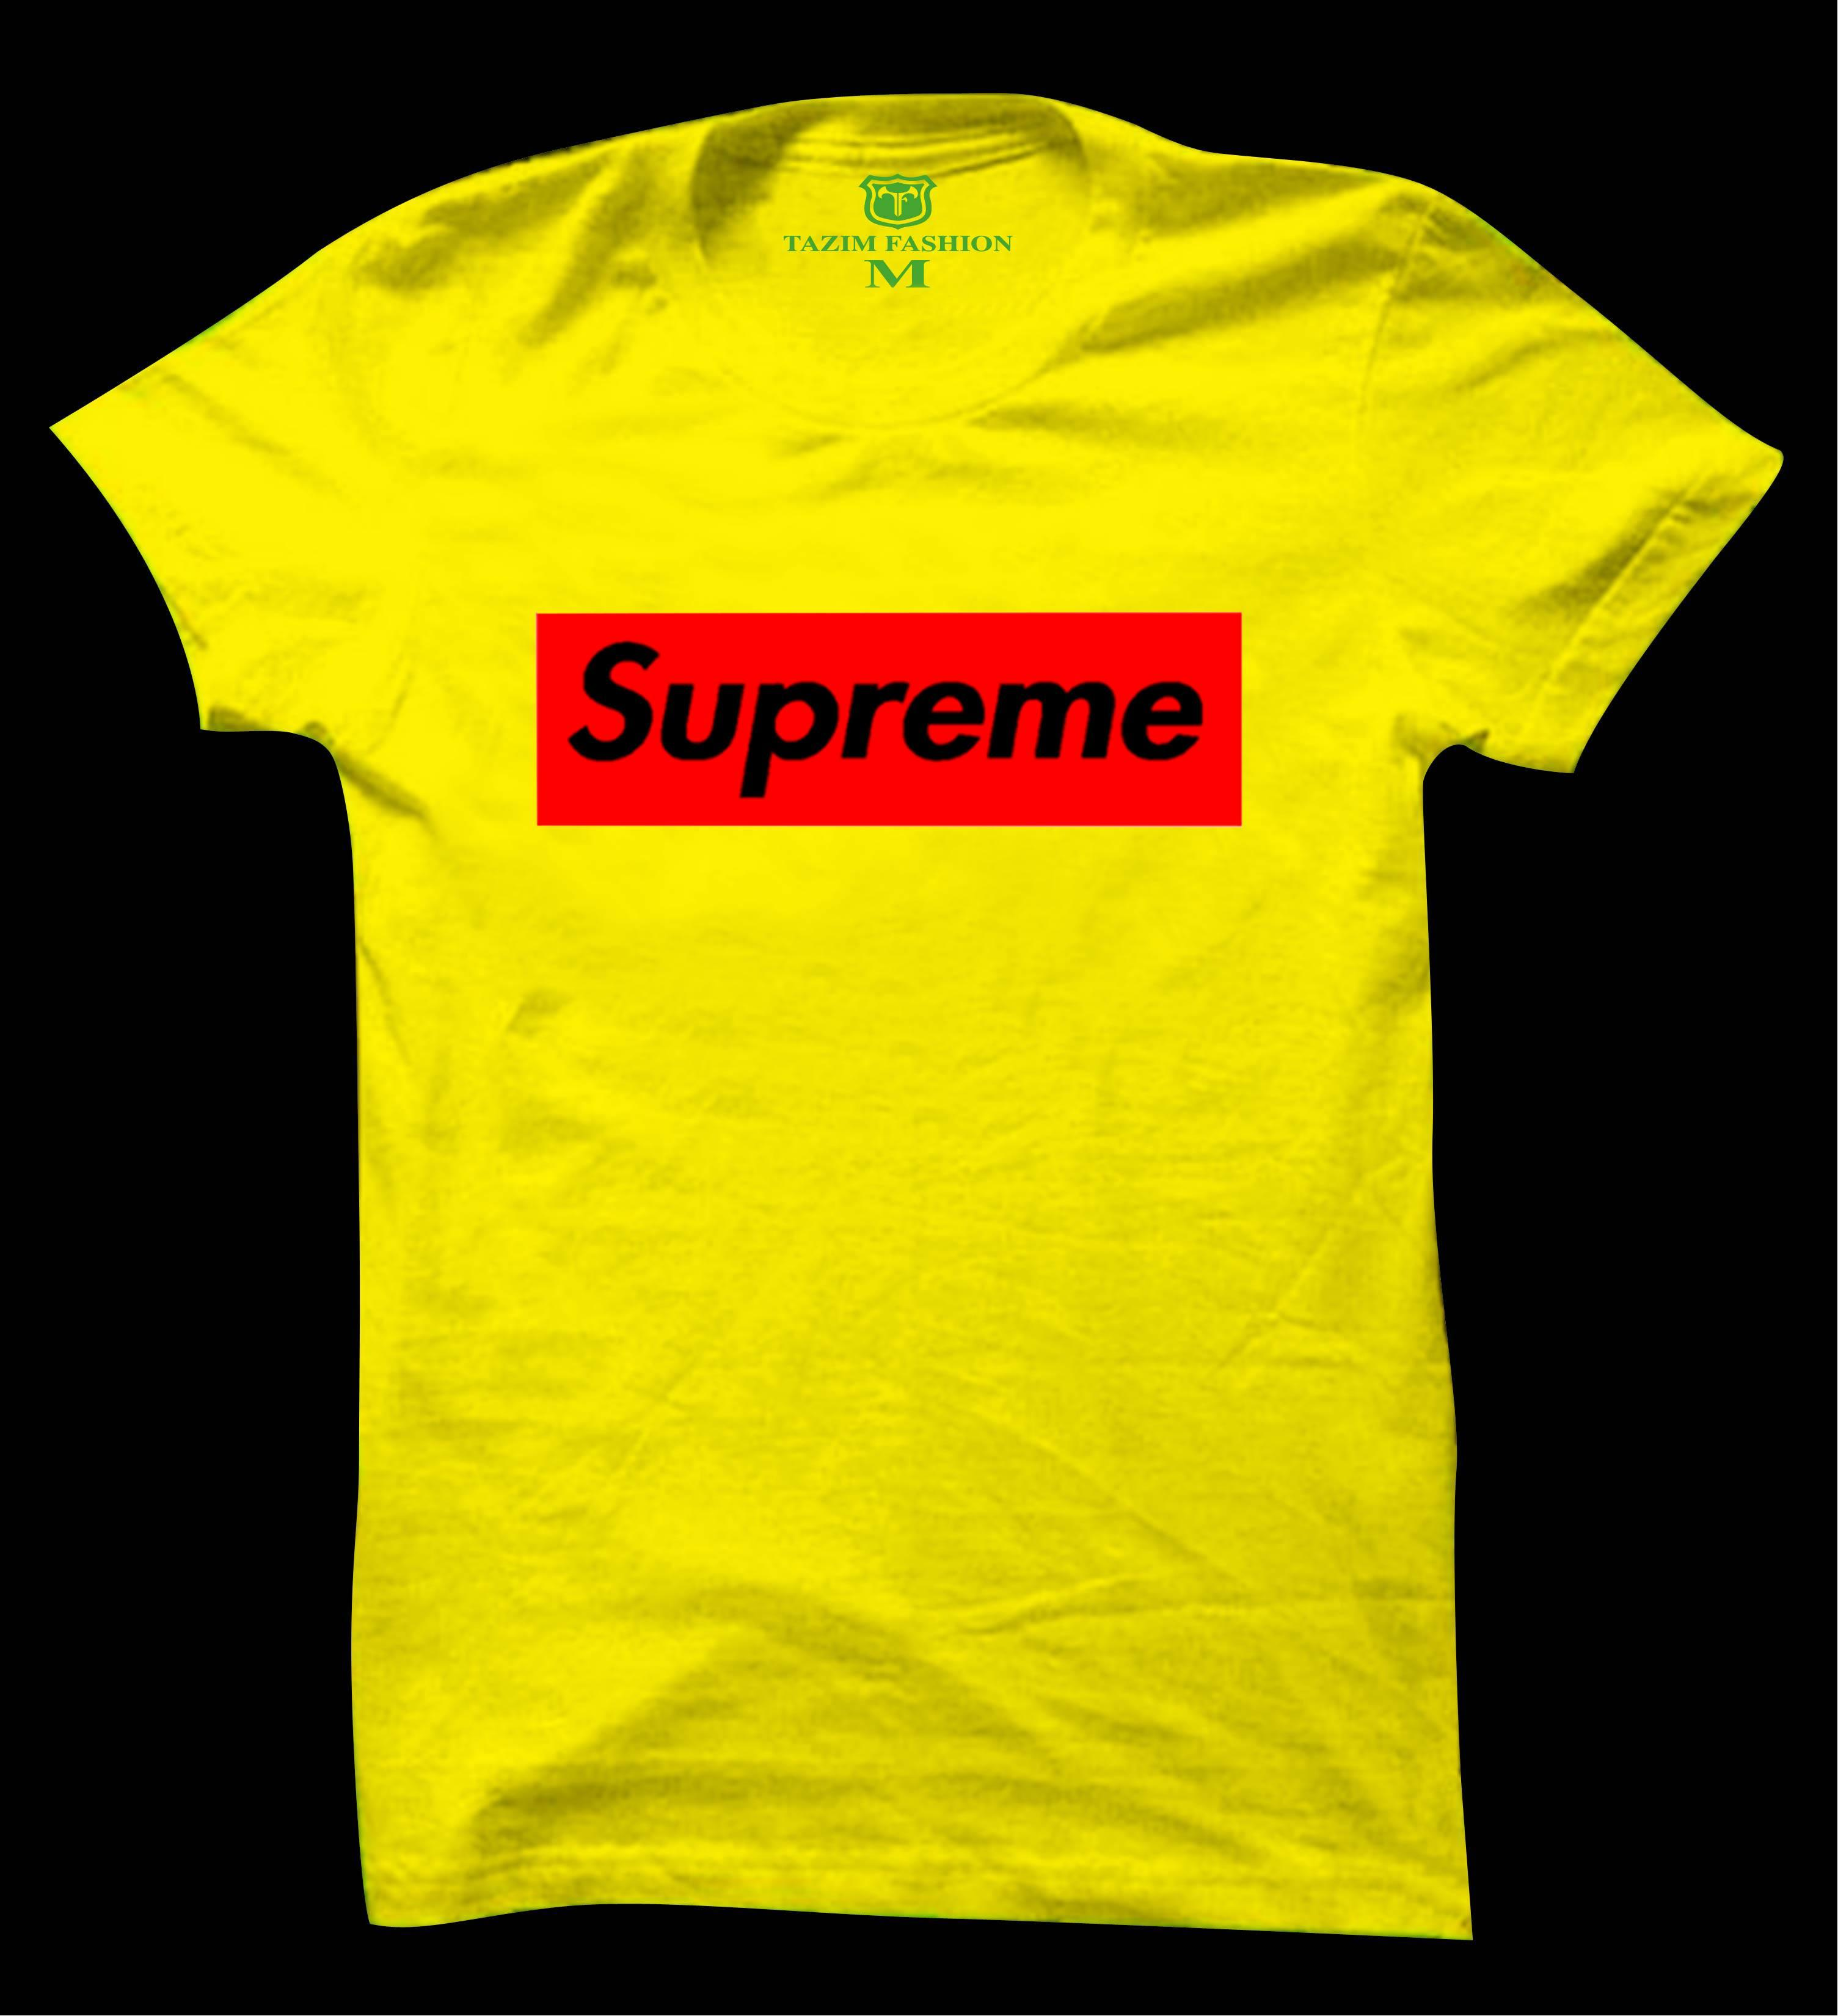 431260ca54e4 Product details of Supreme Yellow Cotton Short Sleeve T-Shirt For Men